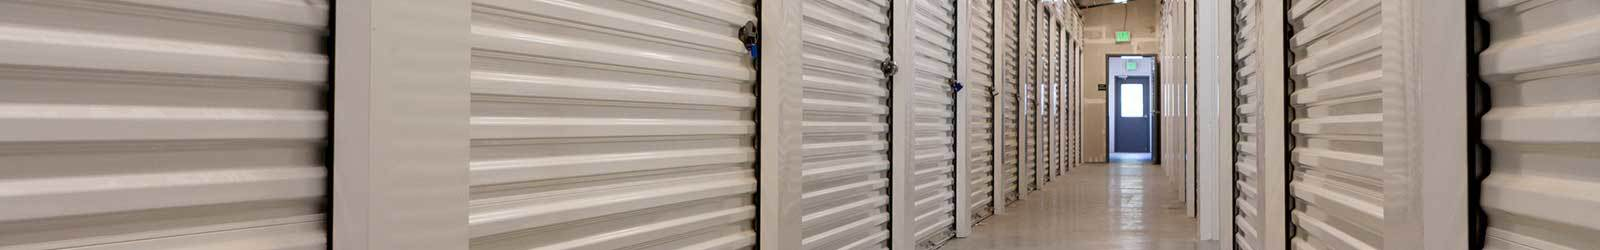 Contact self storage at Smart Storage